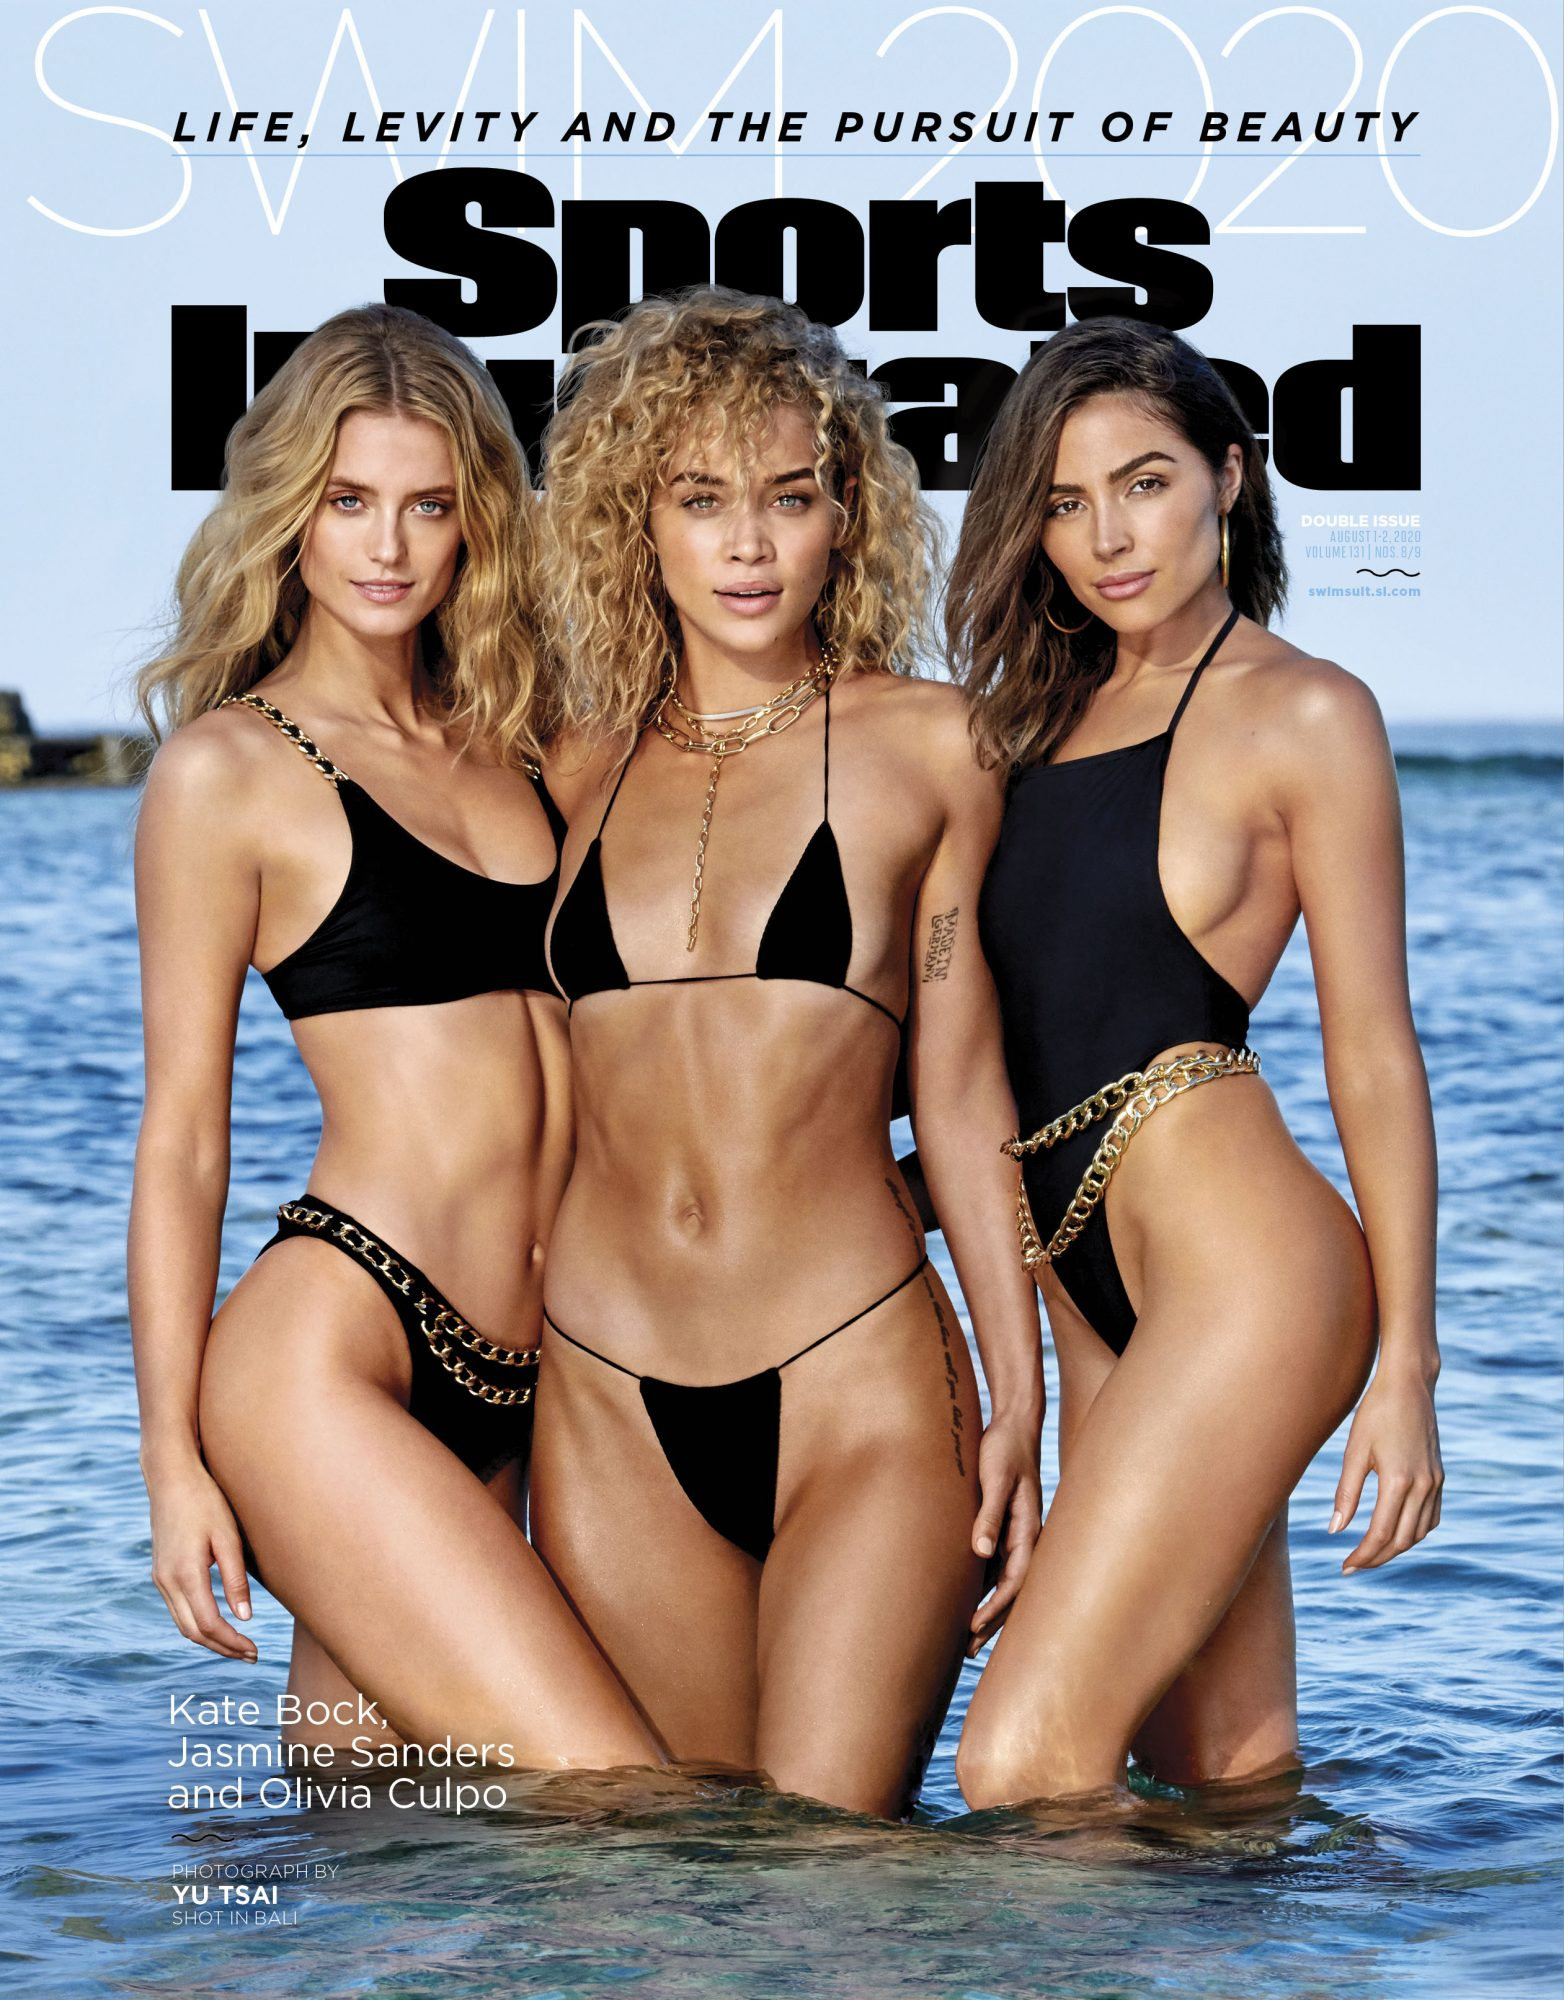 Kate Brock, Jasmine Sanders and Olivia Culpo